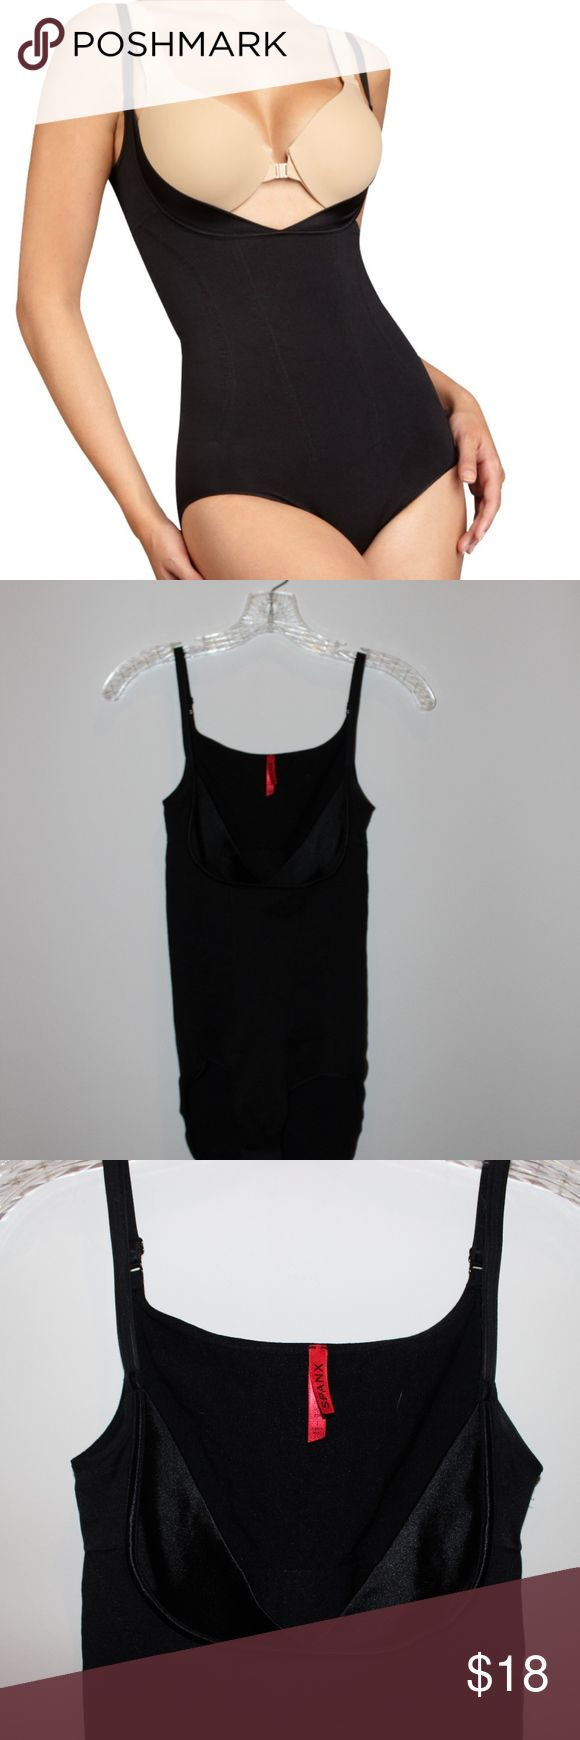 Spanx bodysuit Size 1. Worn once. Fits true to size. No flaws or signs of wear. Has bra-like closure on bottom.  Feel free to ask any questions regarding measurements. SPANX Intimates & Sleepwear Shapewear